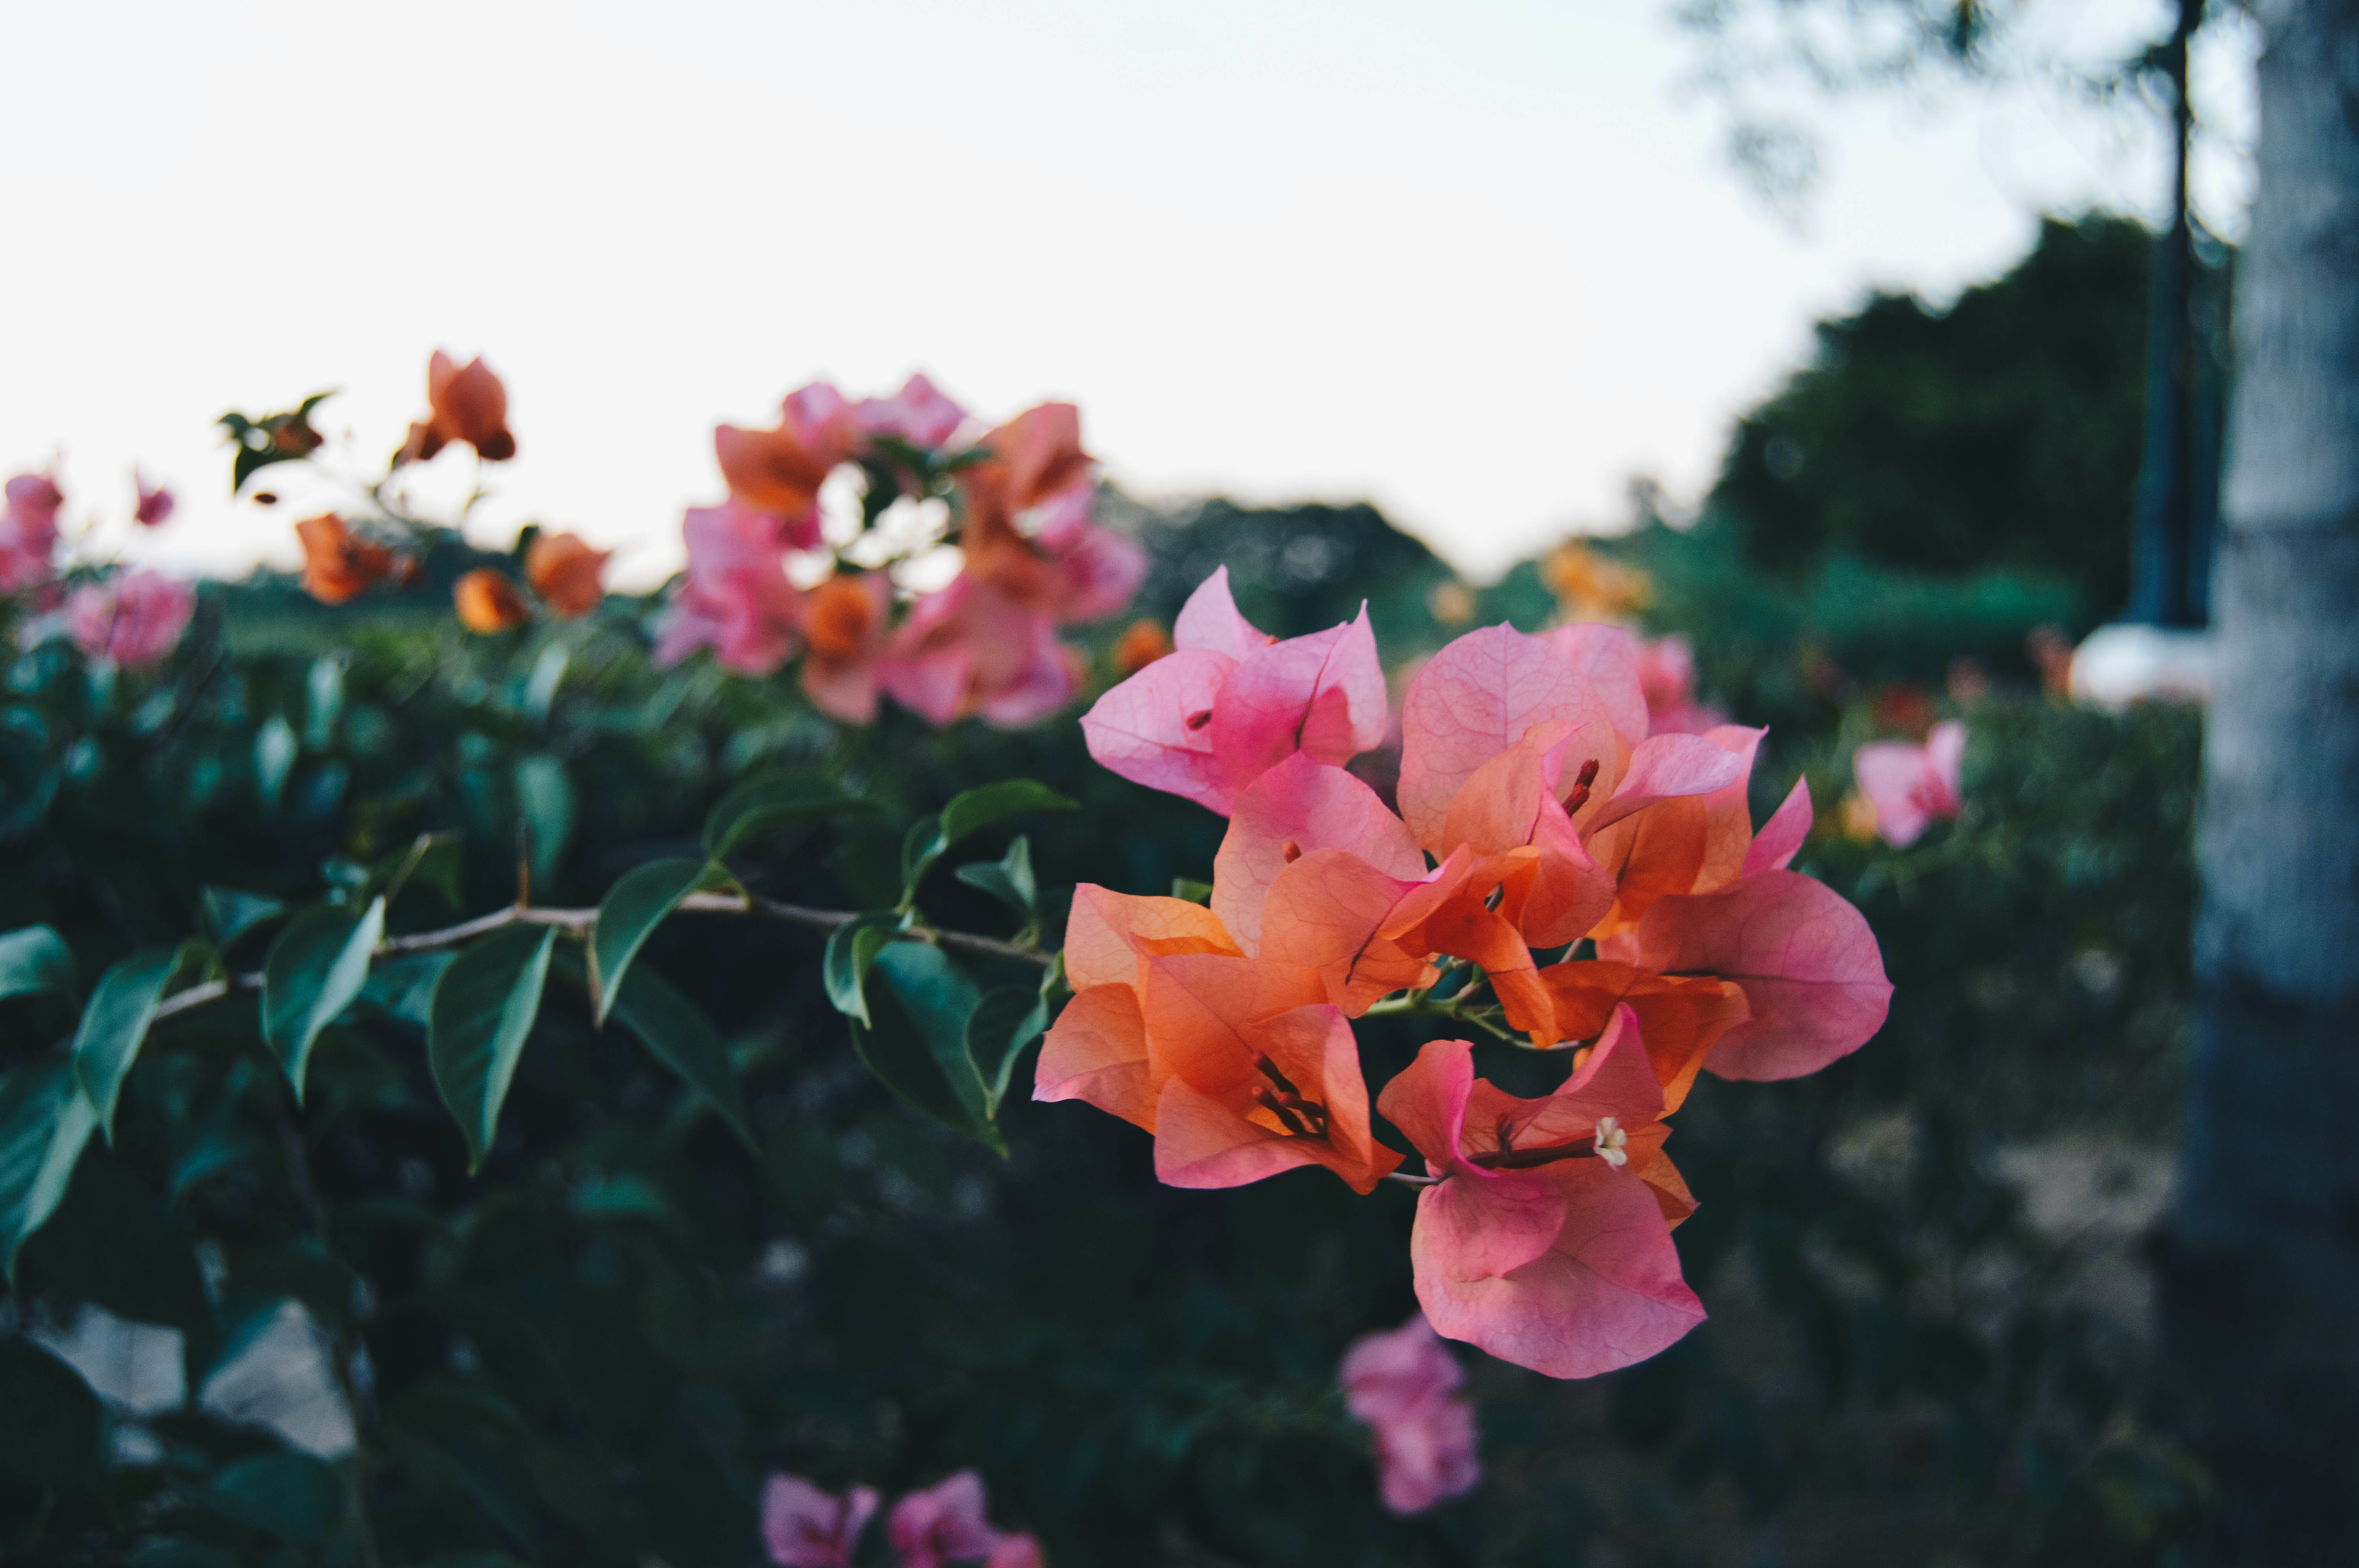 Selective Focus Photography of Pink Bougainvillea Flower